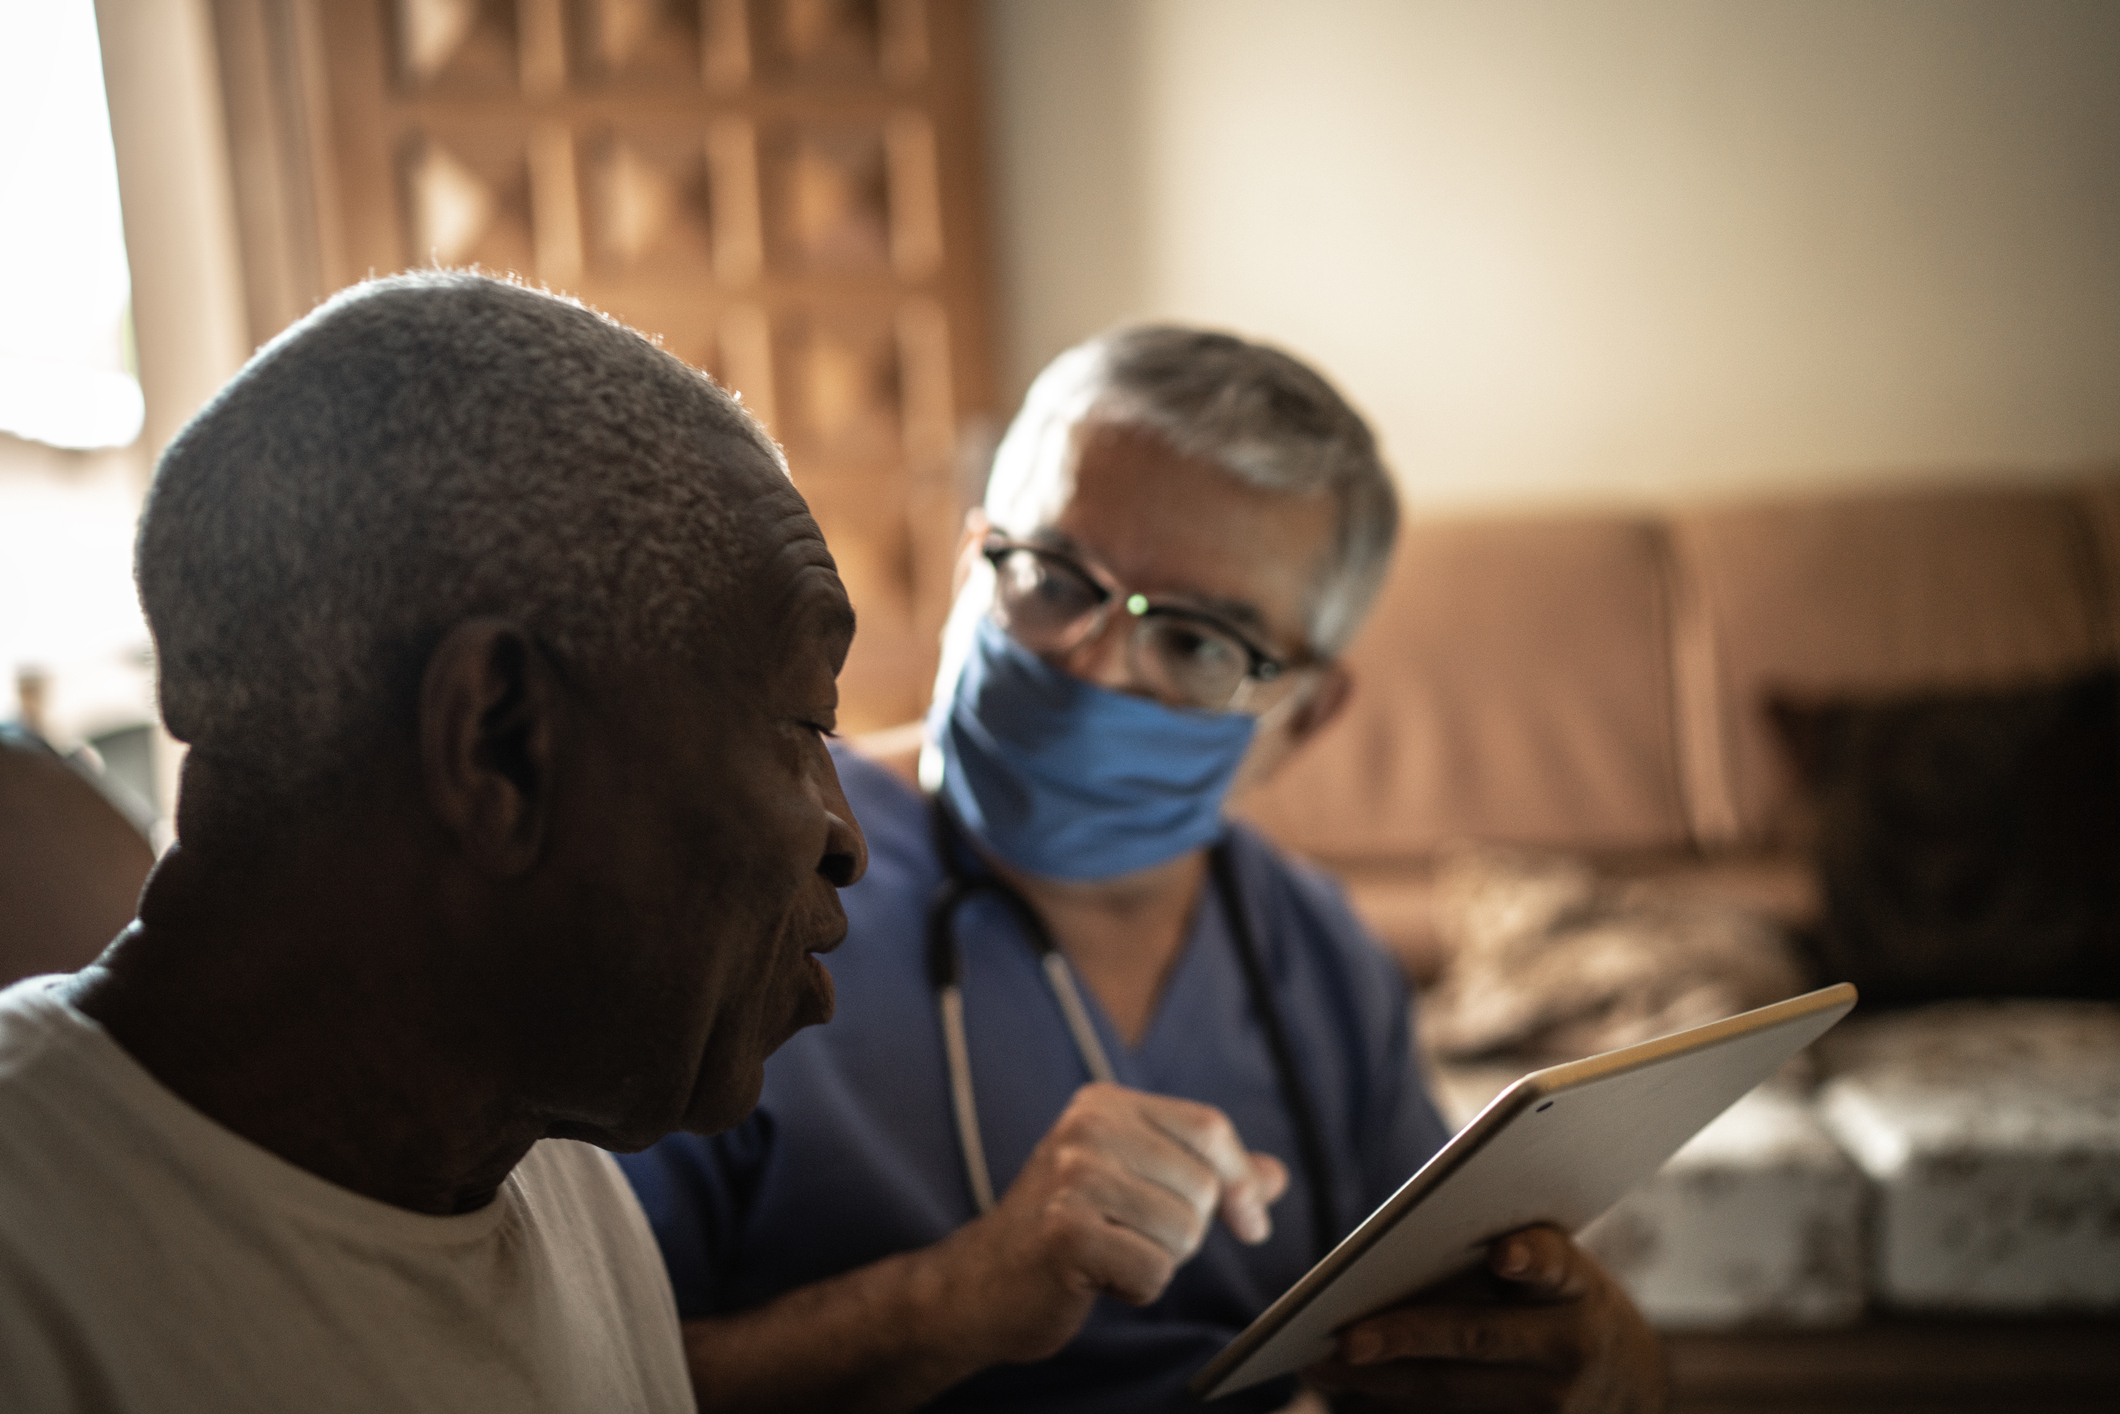 Elder Abuse Awareness & Prevention in Long-Term Care Facilities